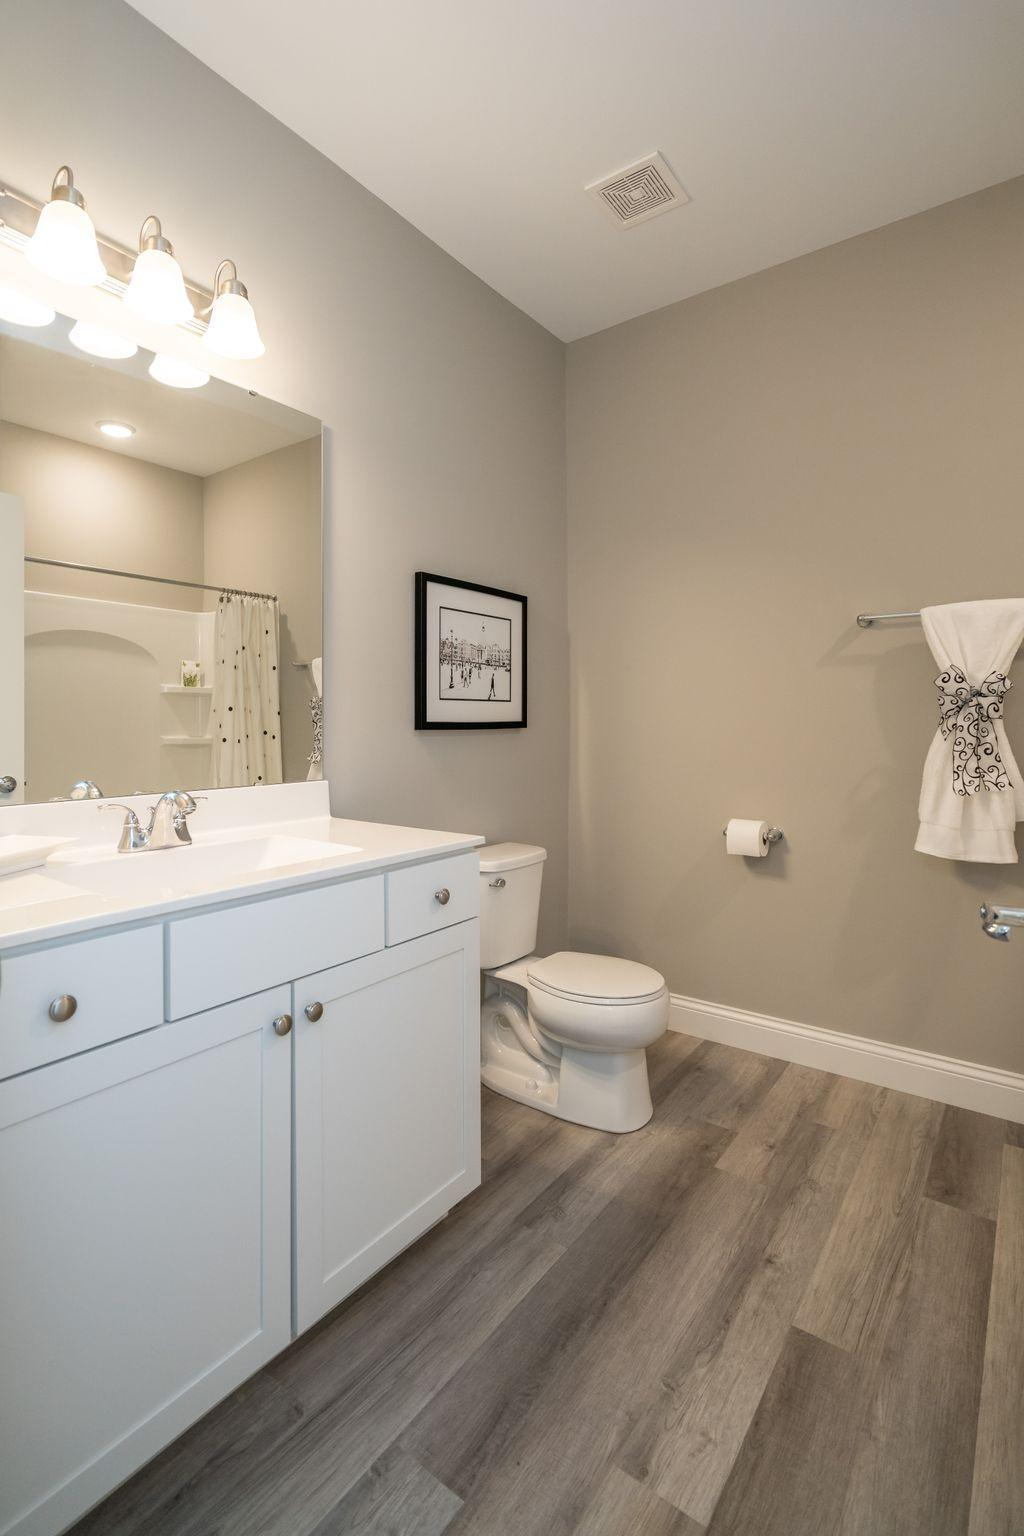 Bathroom featured in the Roosevelt By Payne Family Homes LLC in St. Louis, MO